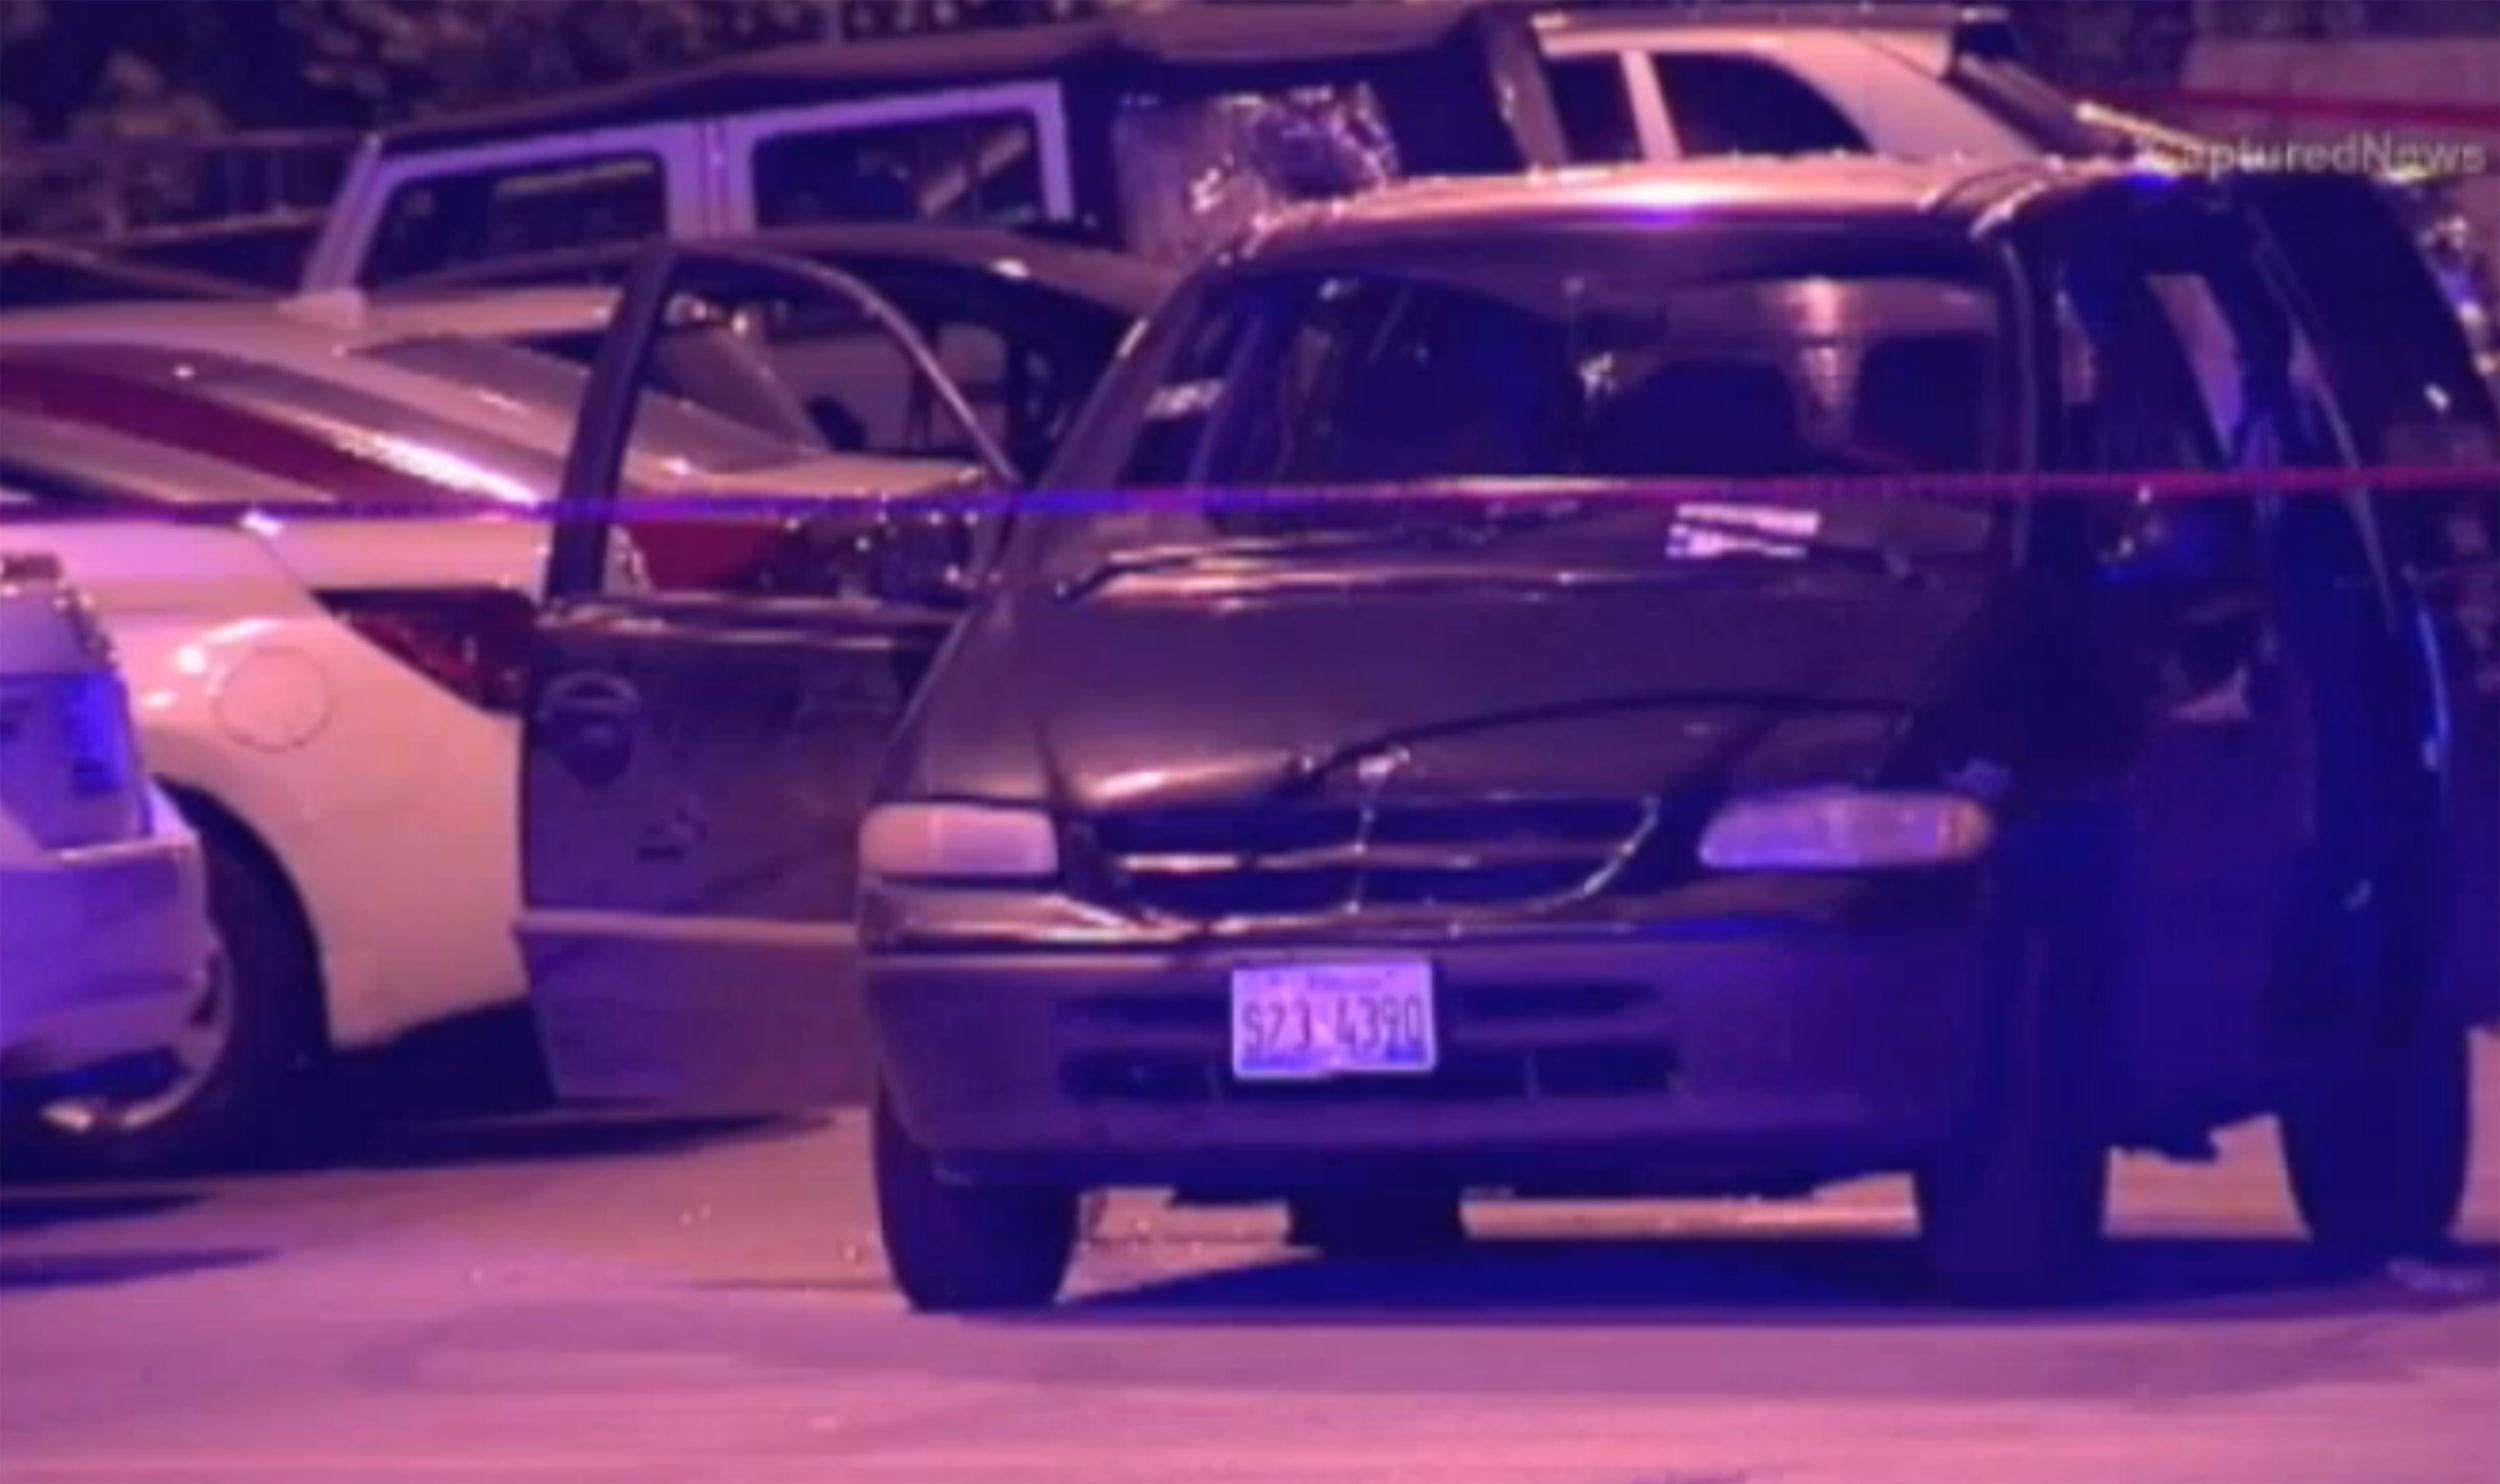 Image: A damaged van was involved in a shooting in Chicago over the weekend.